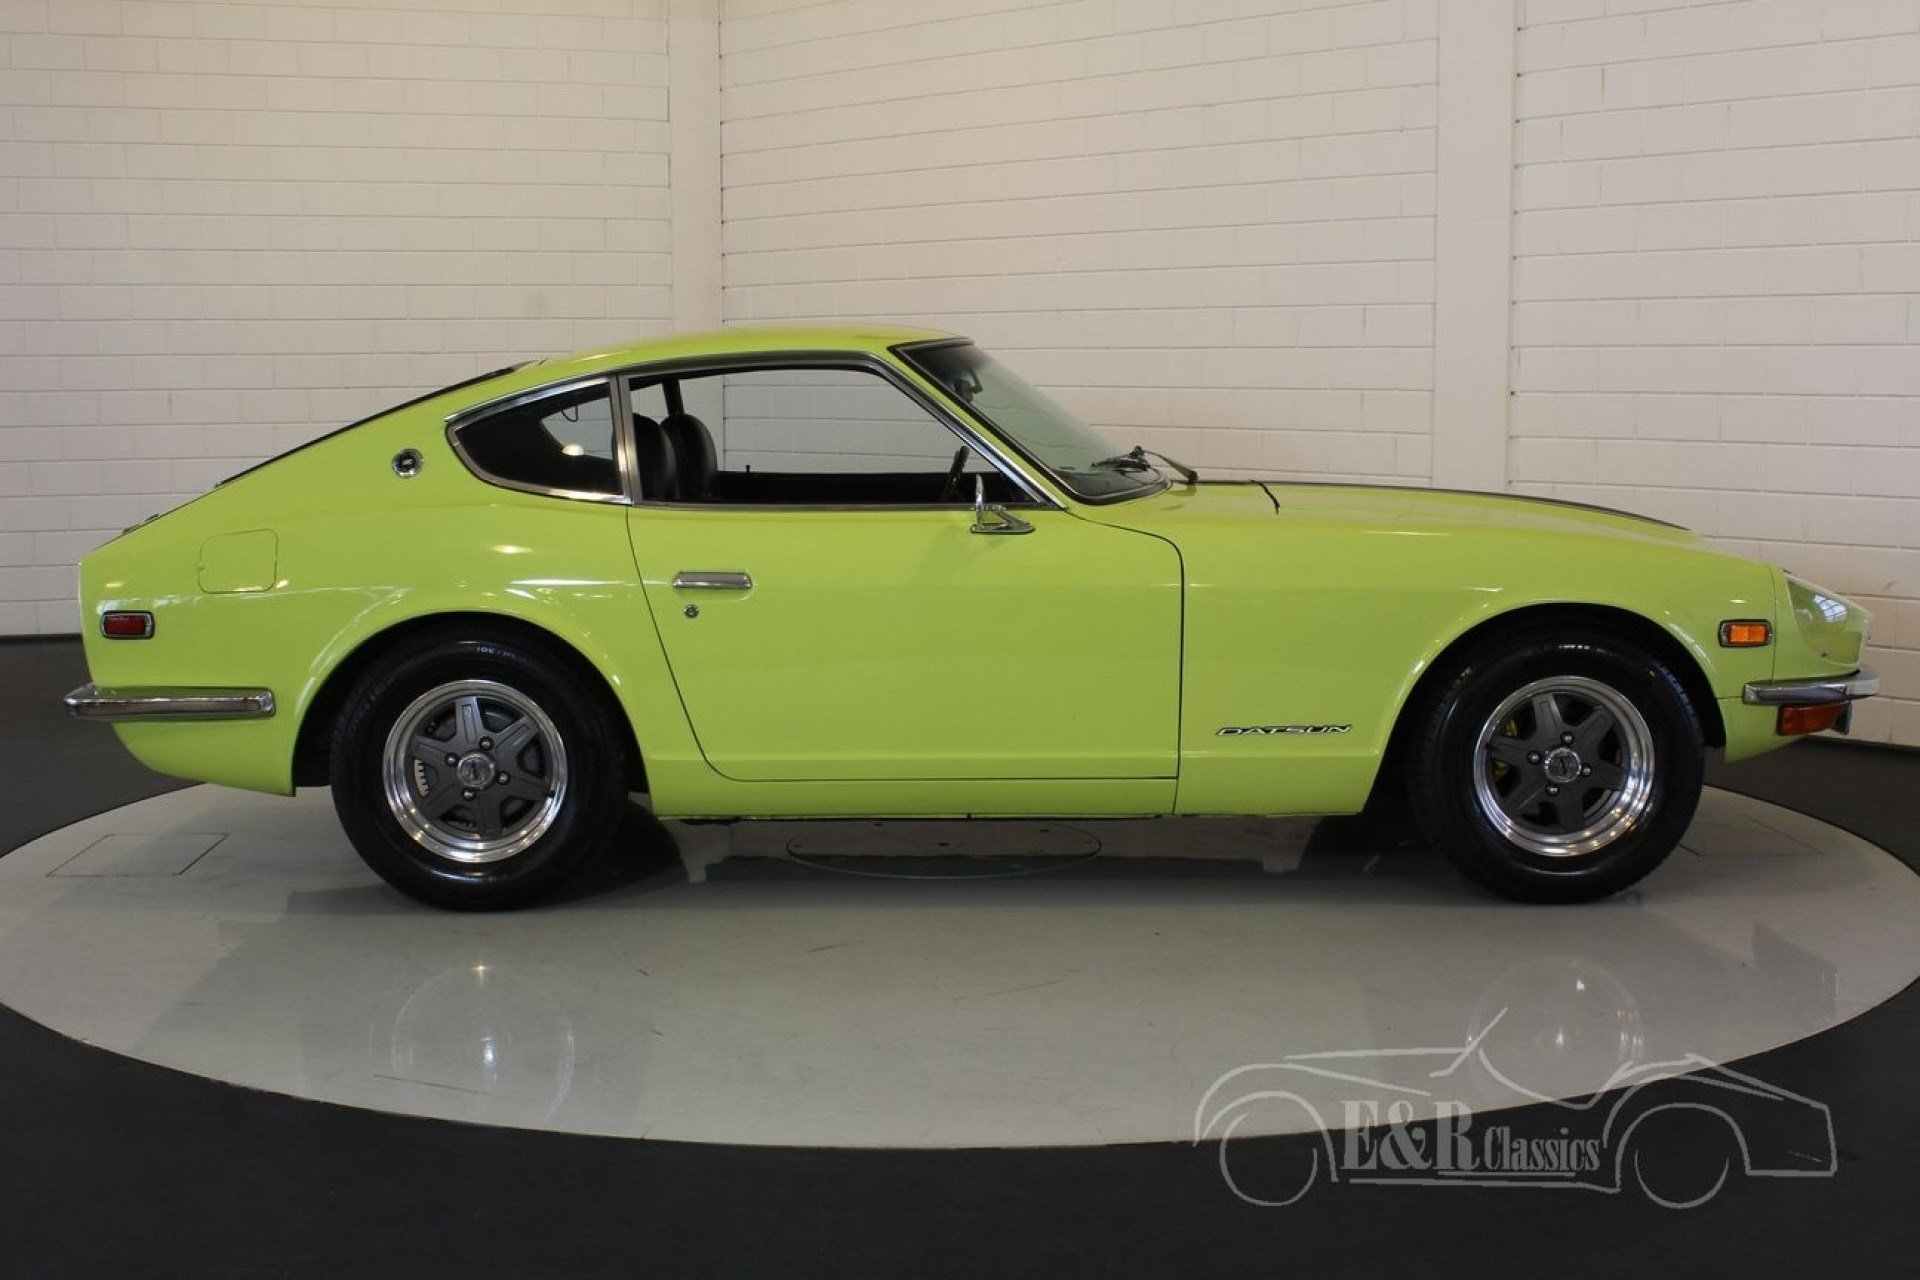 New Datsun 240Z Coupe 1972 For Sale At Erclassics On This Month